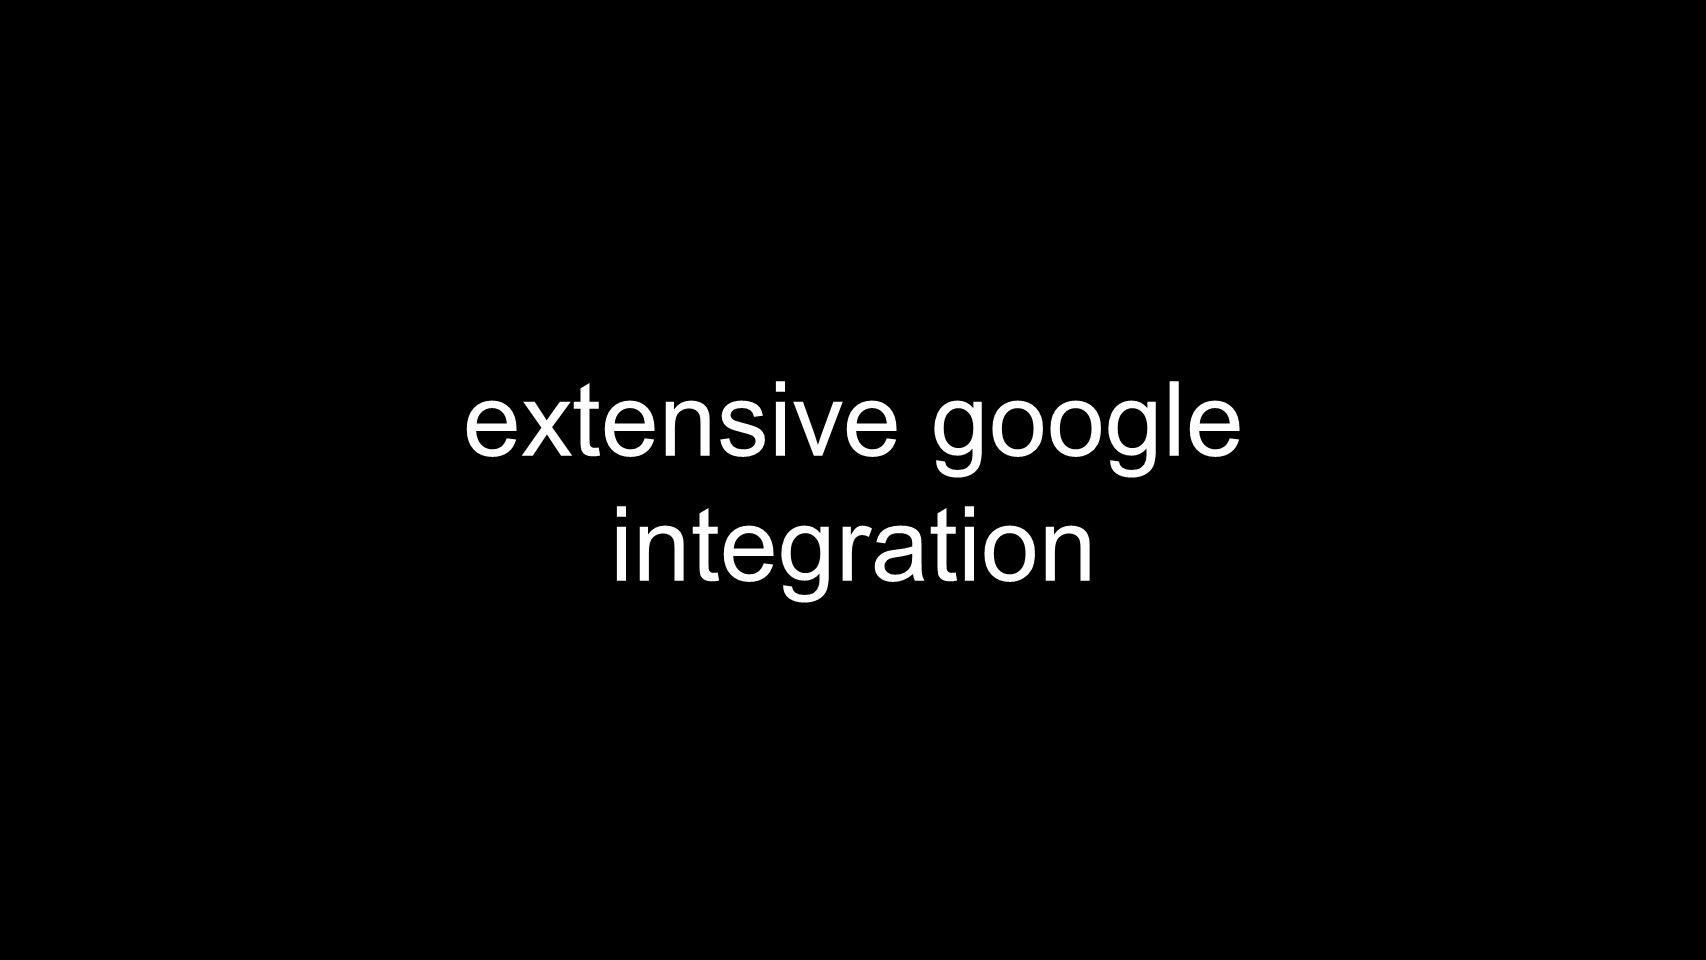 extensive google integration